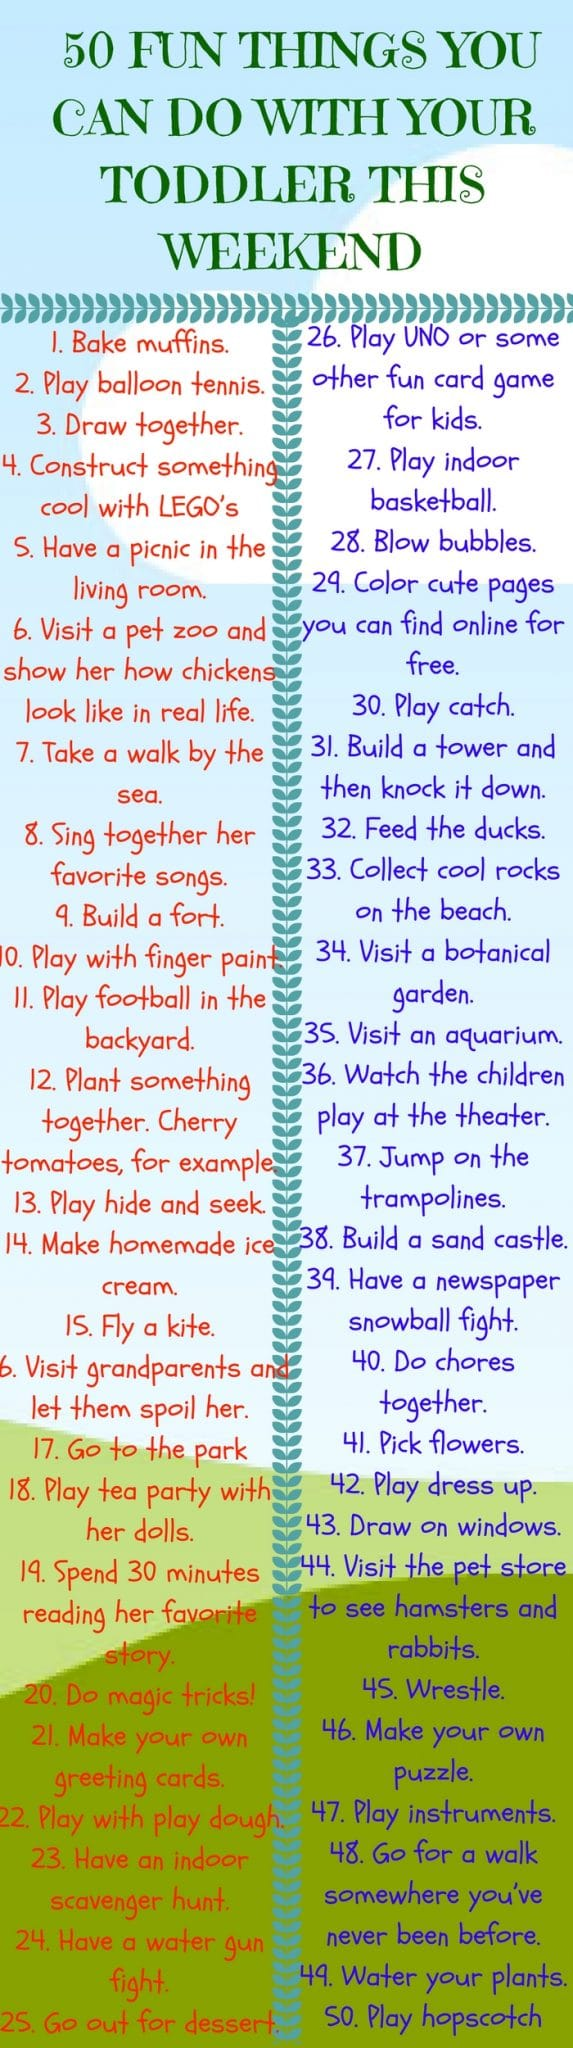 Fun Activities For Toddlers